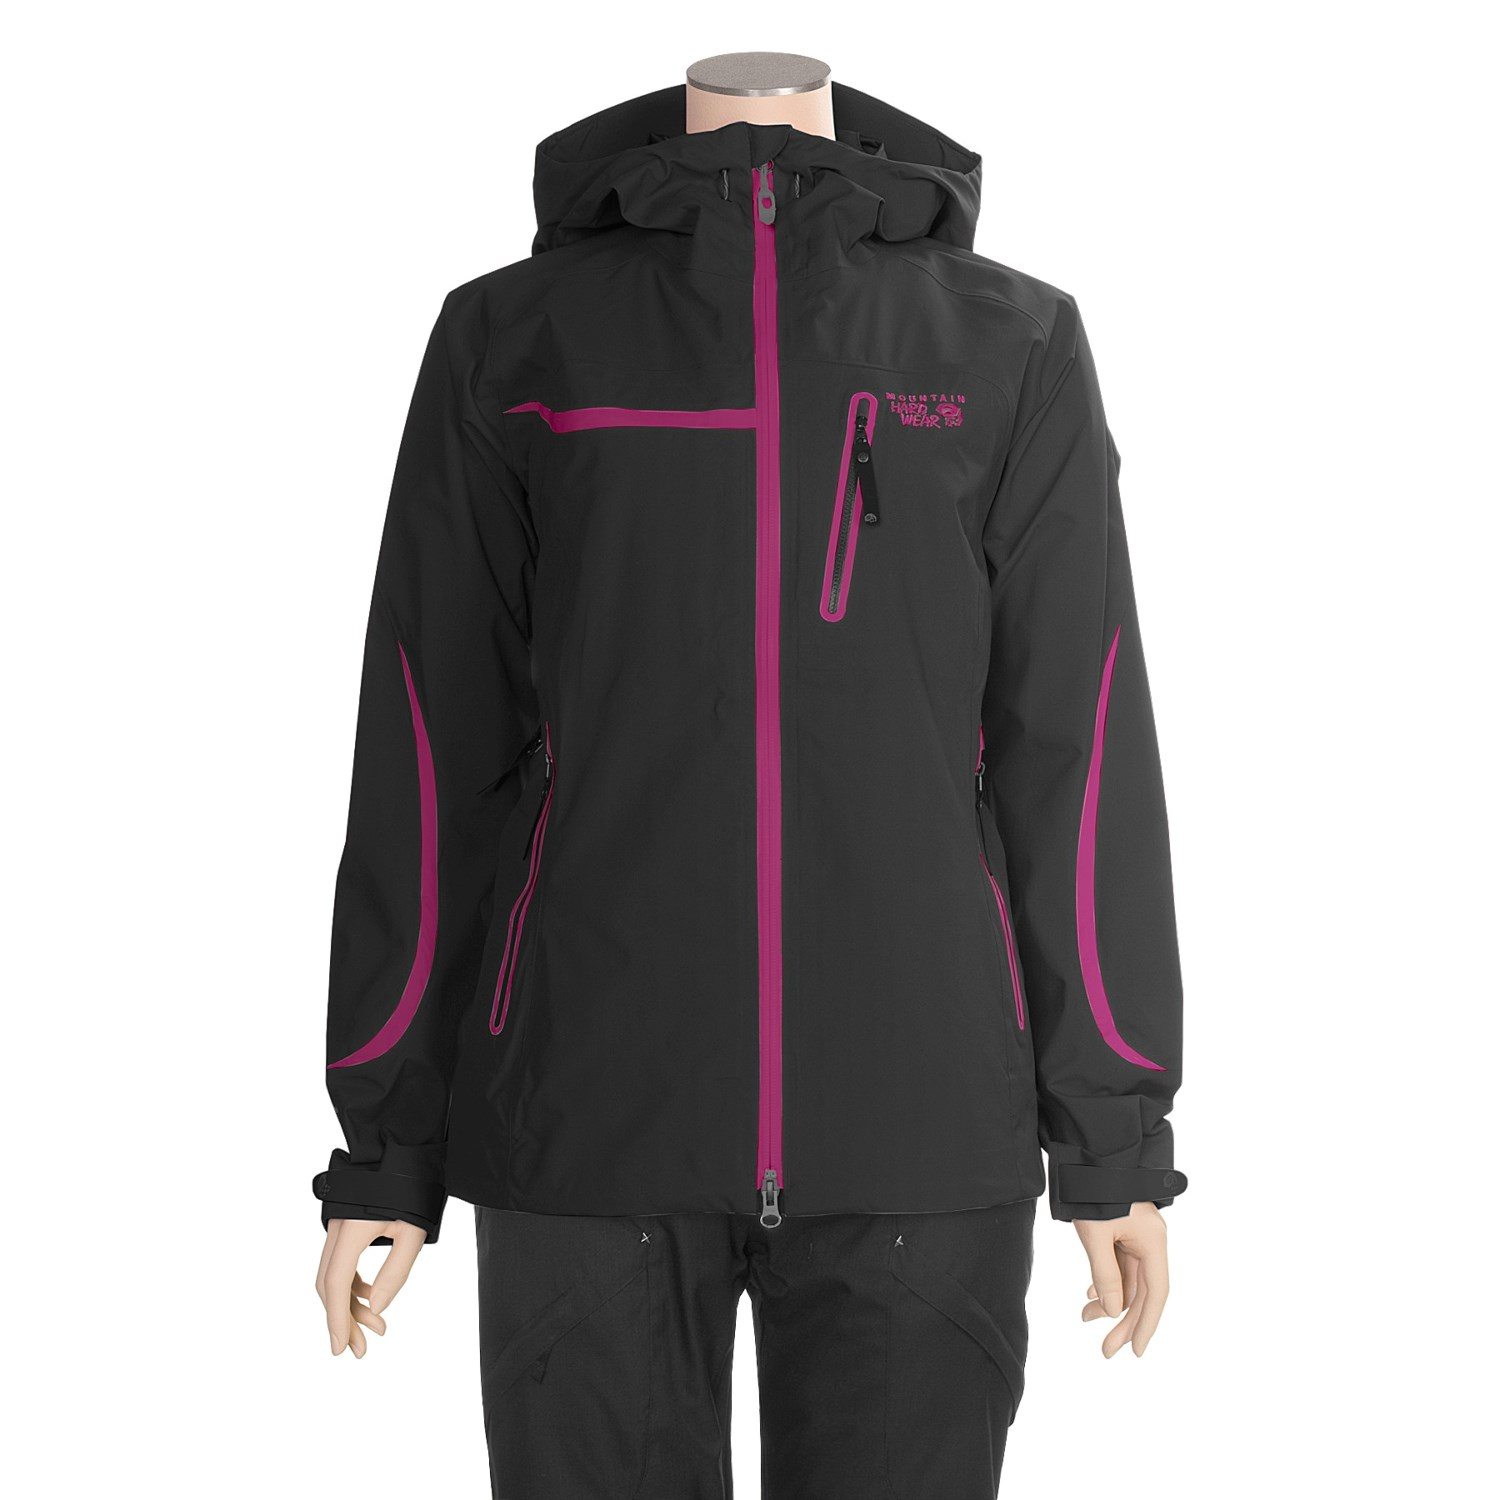 mountain hardwear emporia gore tex pro shell jacket. Black Bedroom Furniture Sets. Home Design Ideas